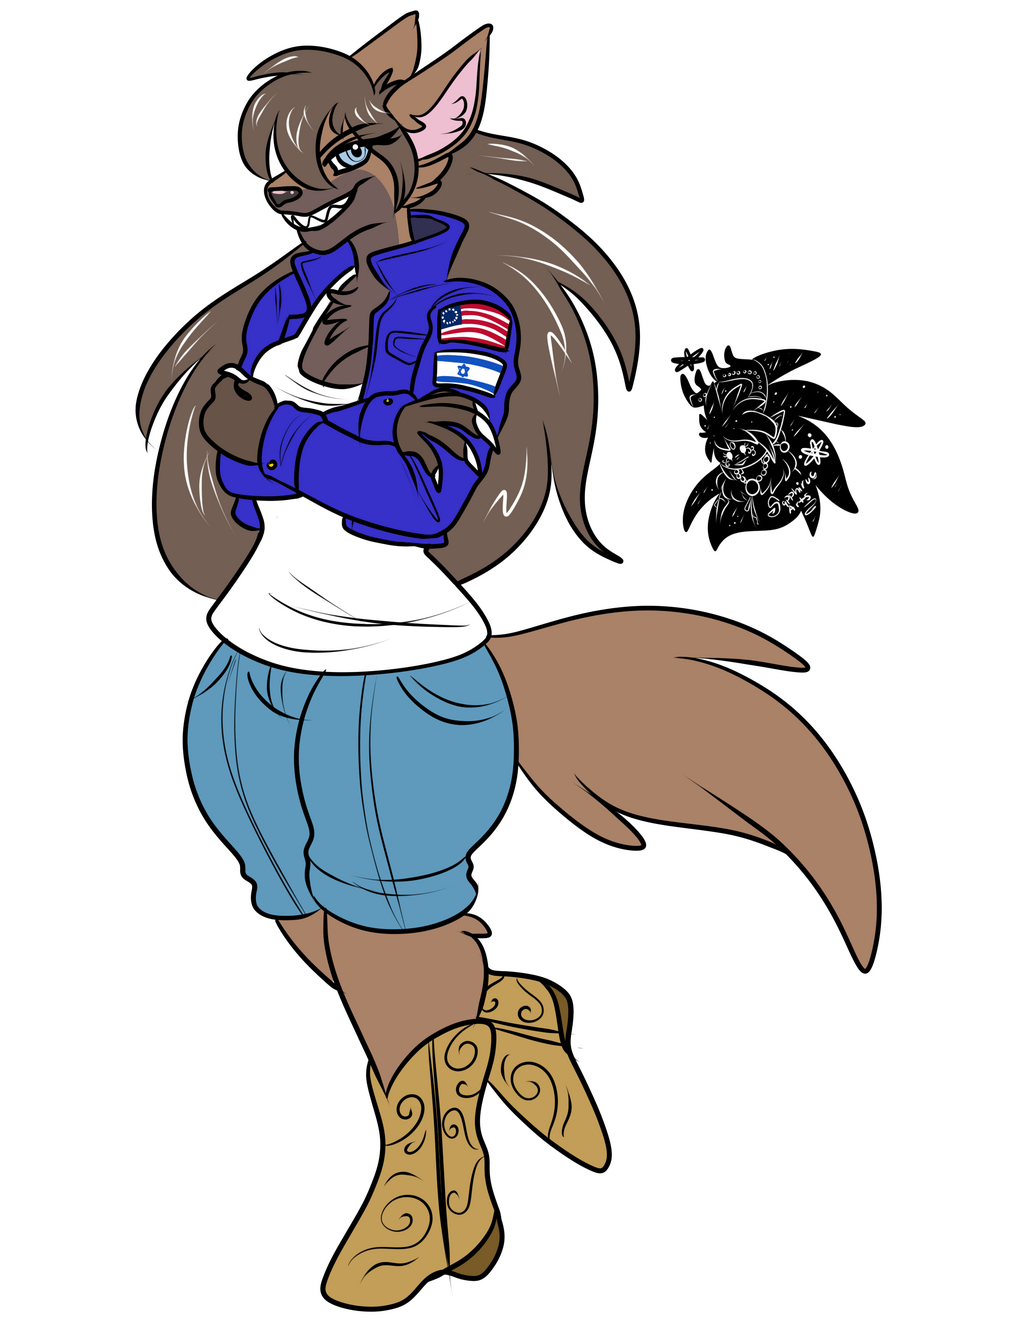 Tayler +Flatcolored Commission+